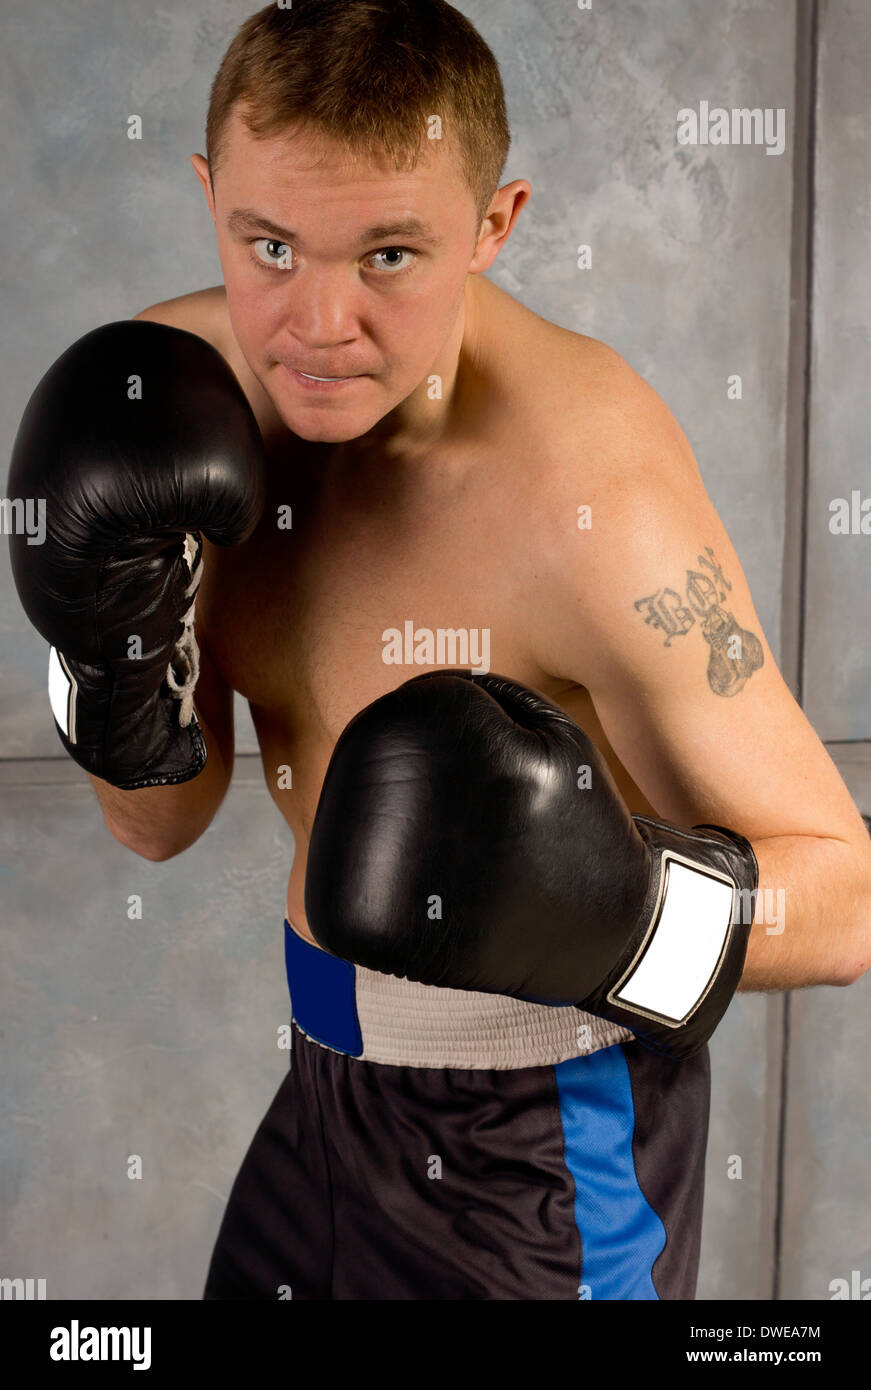 Determined professional young boxer in training leaning in ready to land a punch on his opponent, close up view - Stock Image